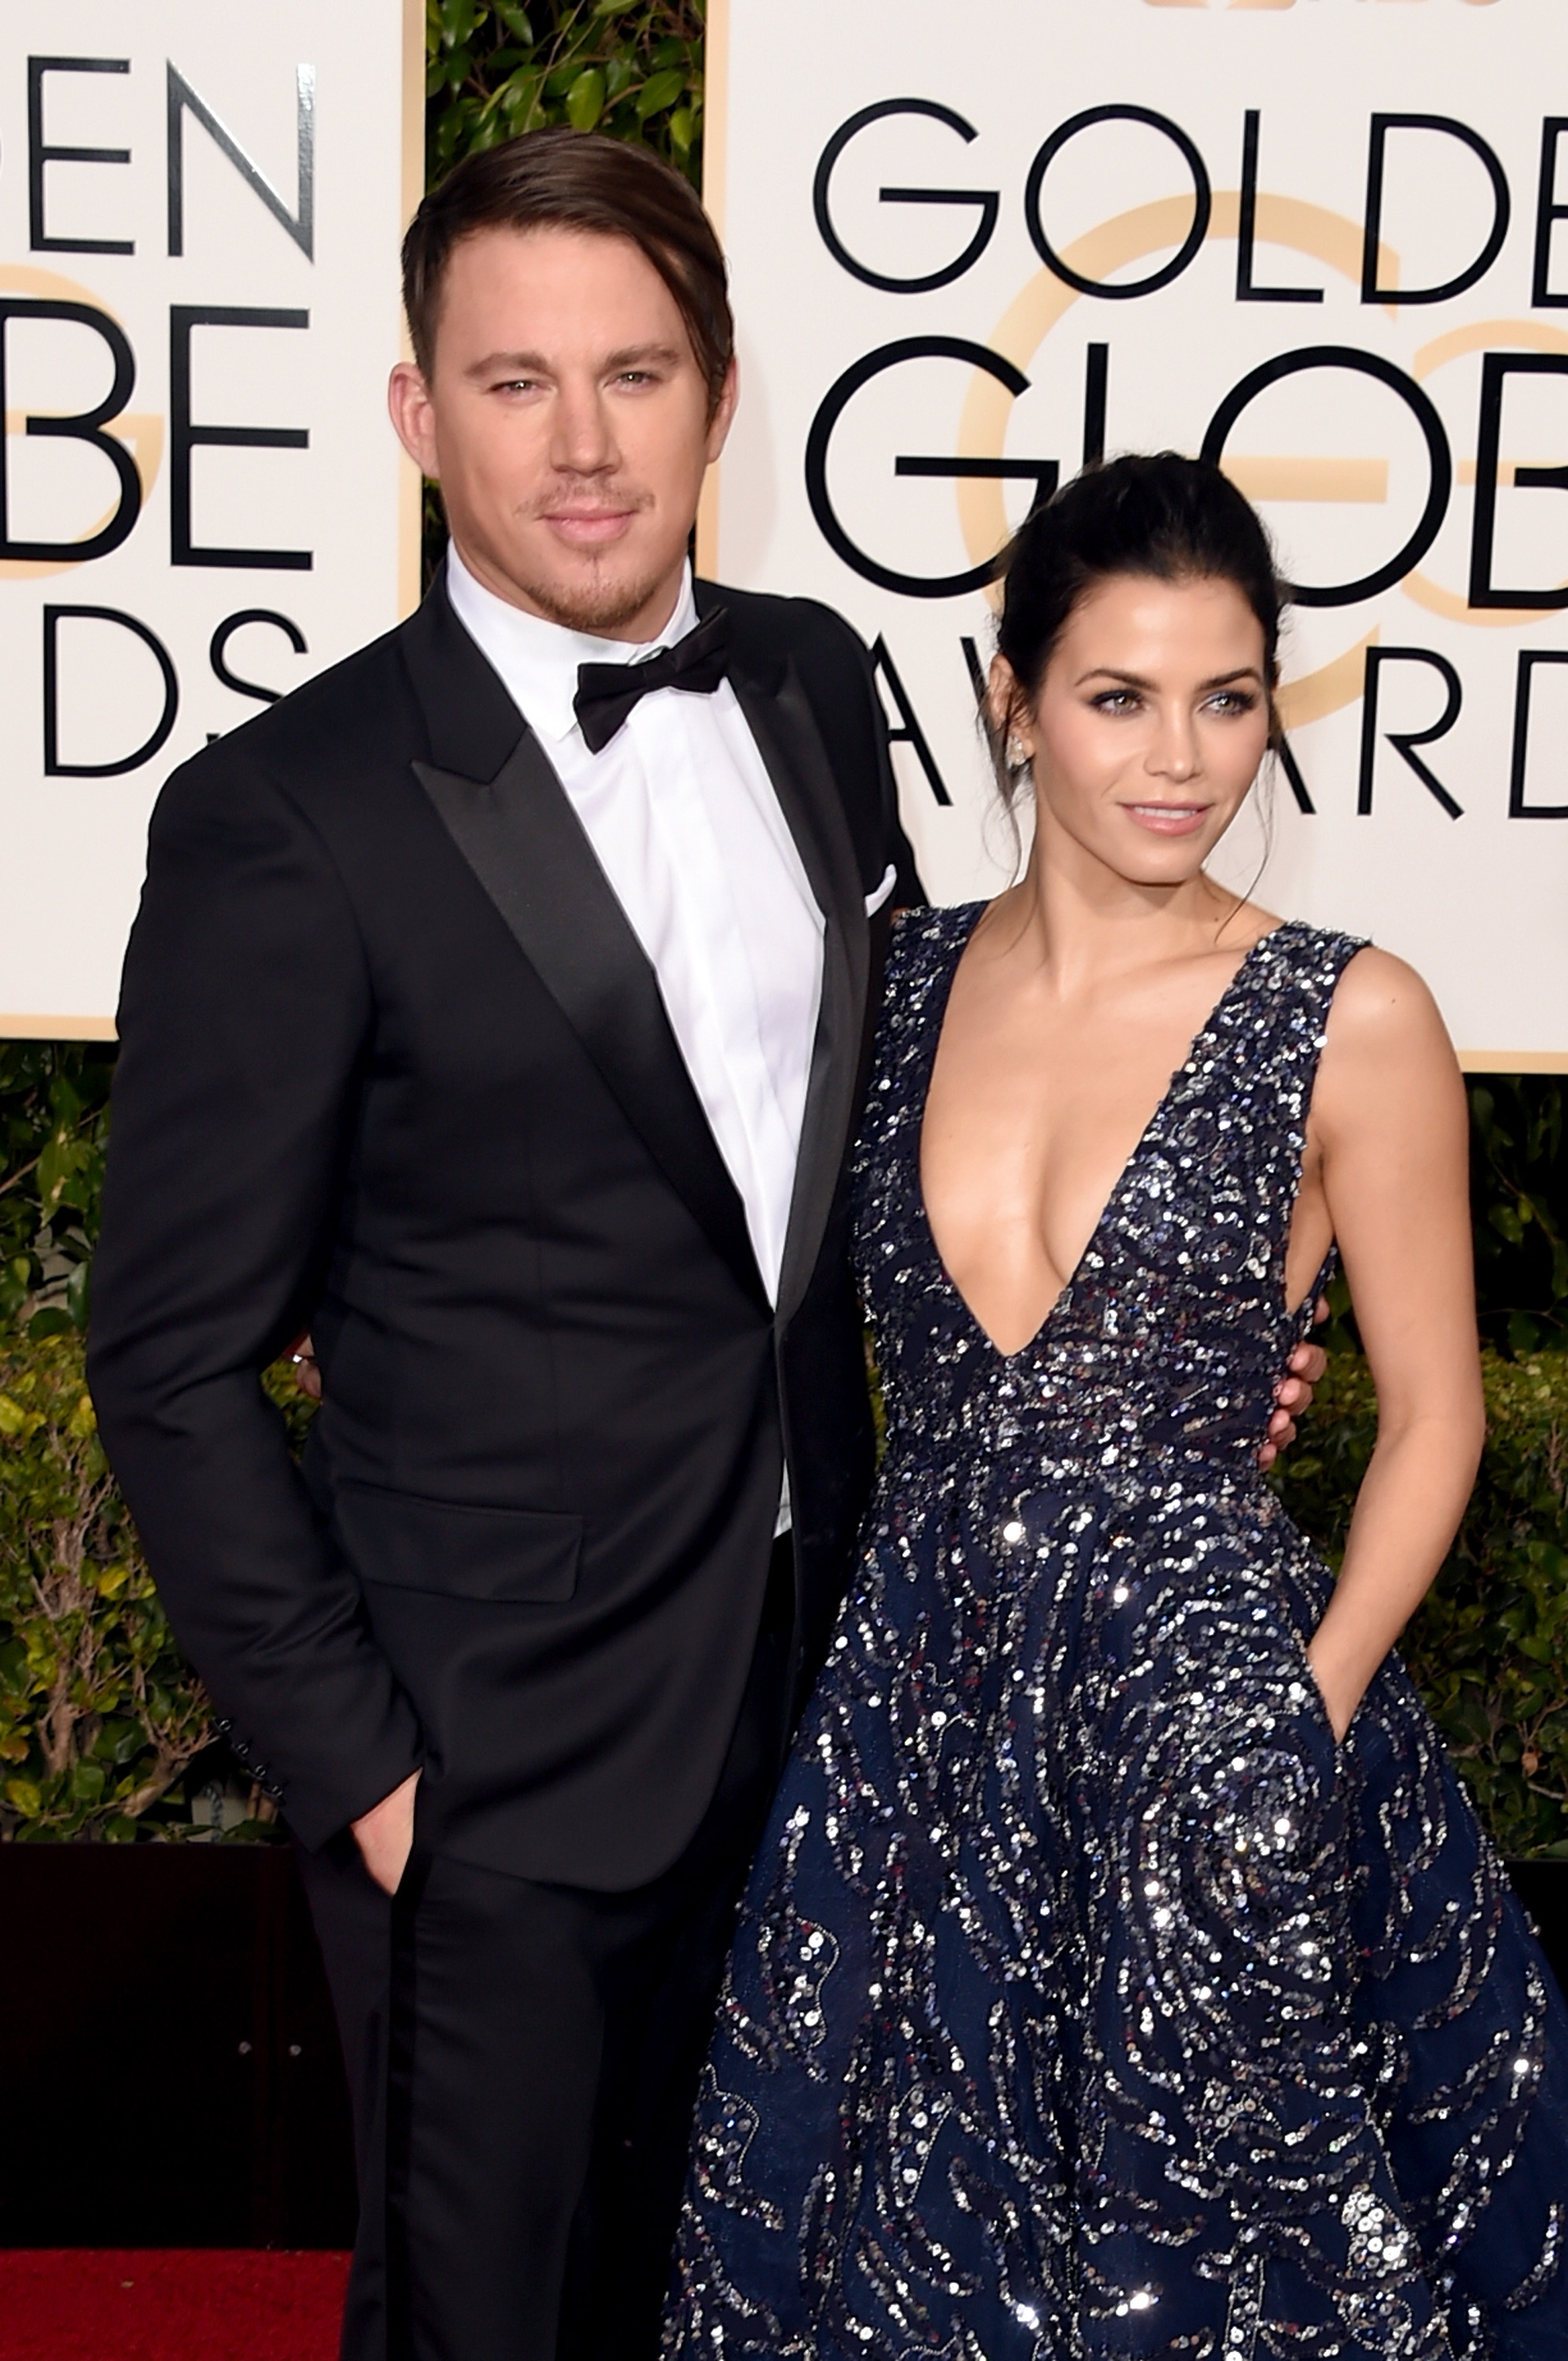 Actors Channing Tatum (L) and Jenna Dewan Tatum attend the 73rd Annual Golden Globe Awards held at the Beverly Hilton Hotel on January 10, 2016 in Beverly Hills, California.